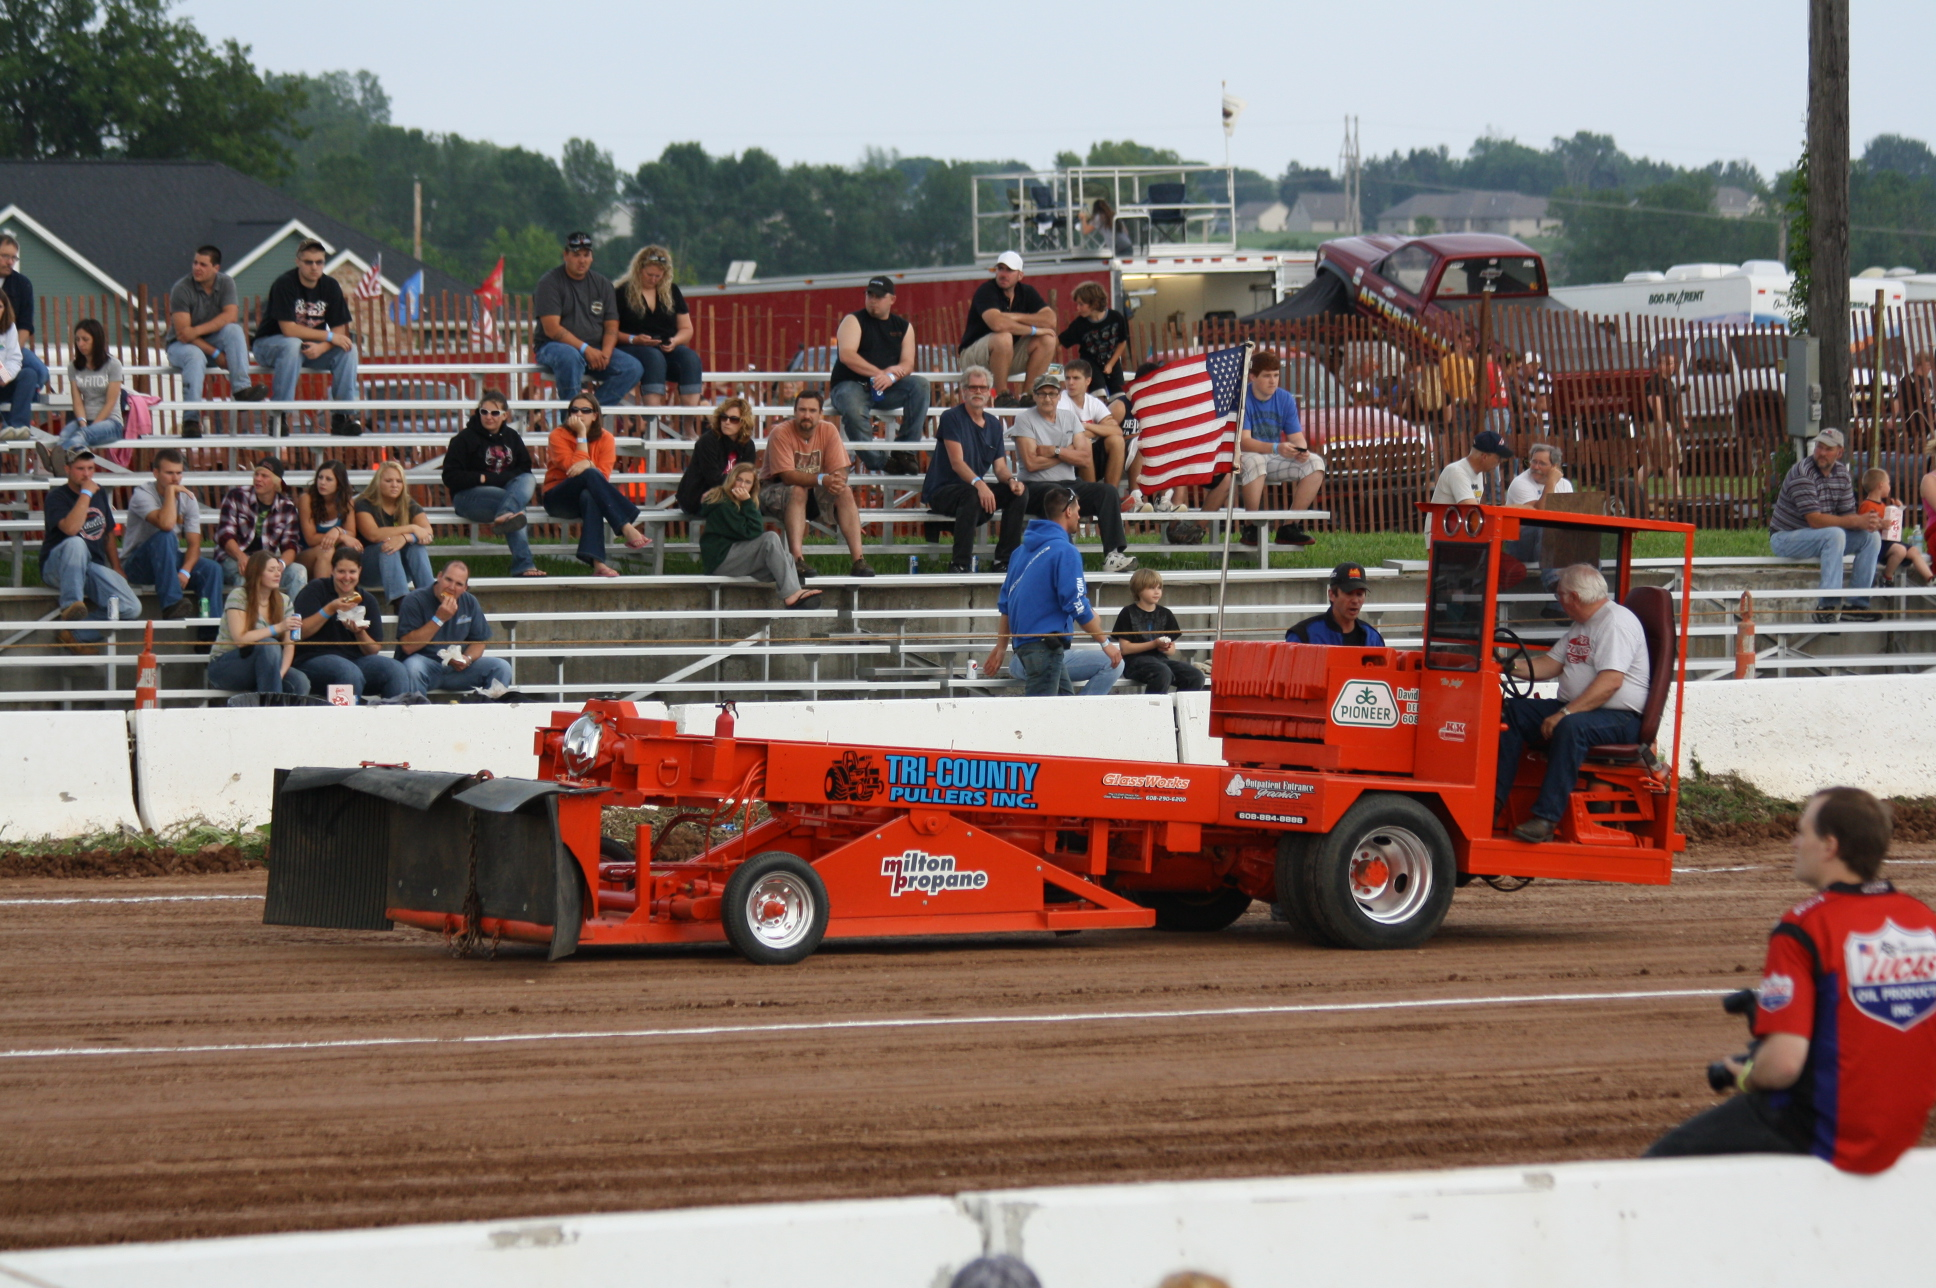 File:Truck And Tractor Pull Sled 2011 Mackville Nationals